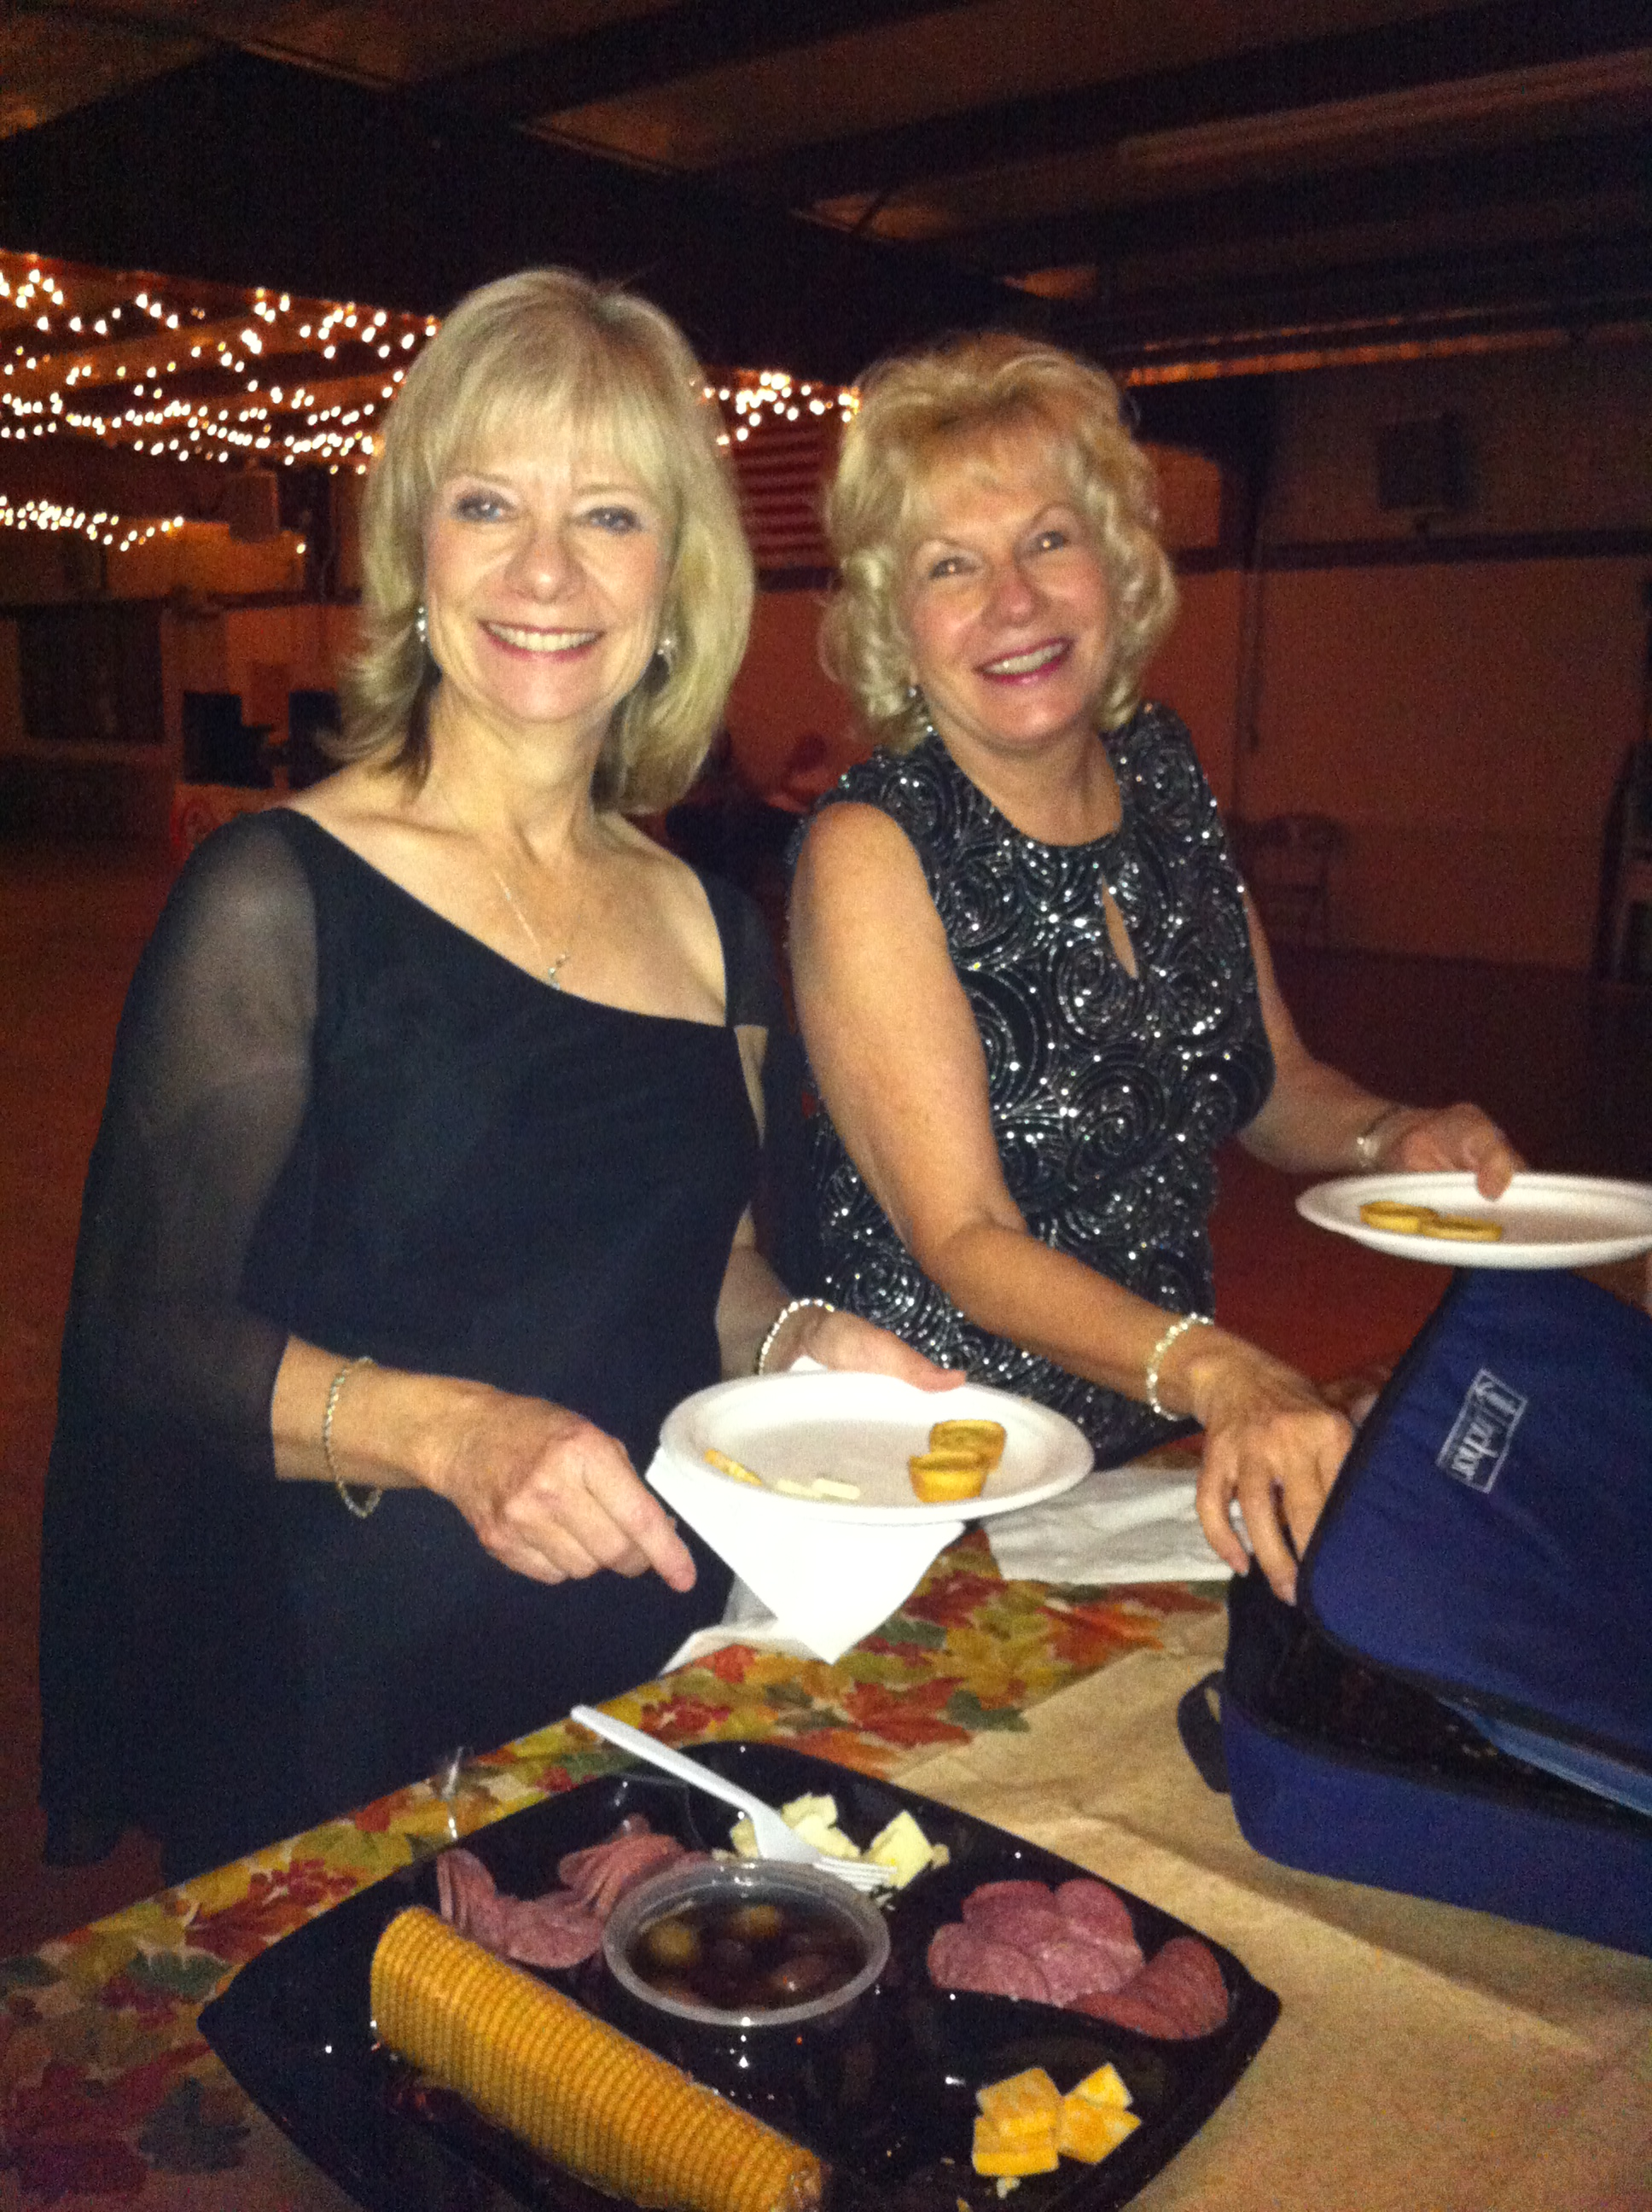 Pam and Susan enjoying the food